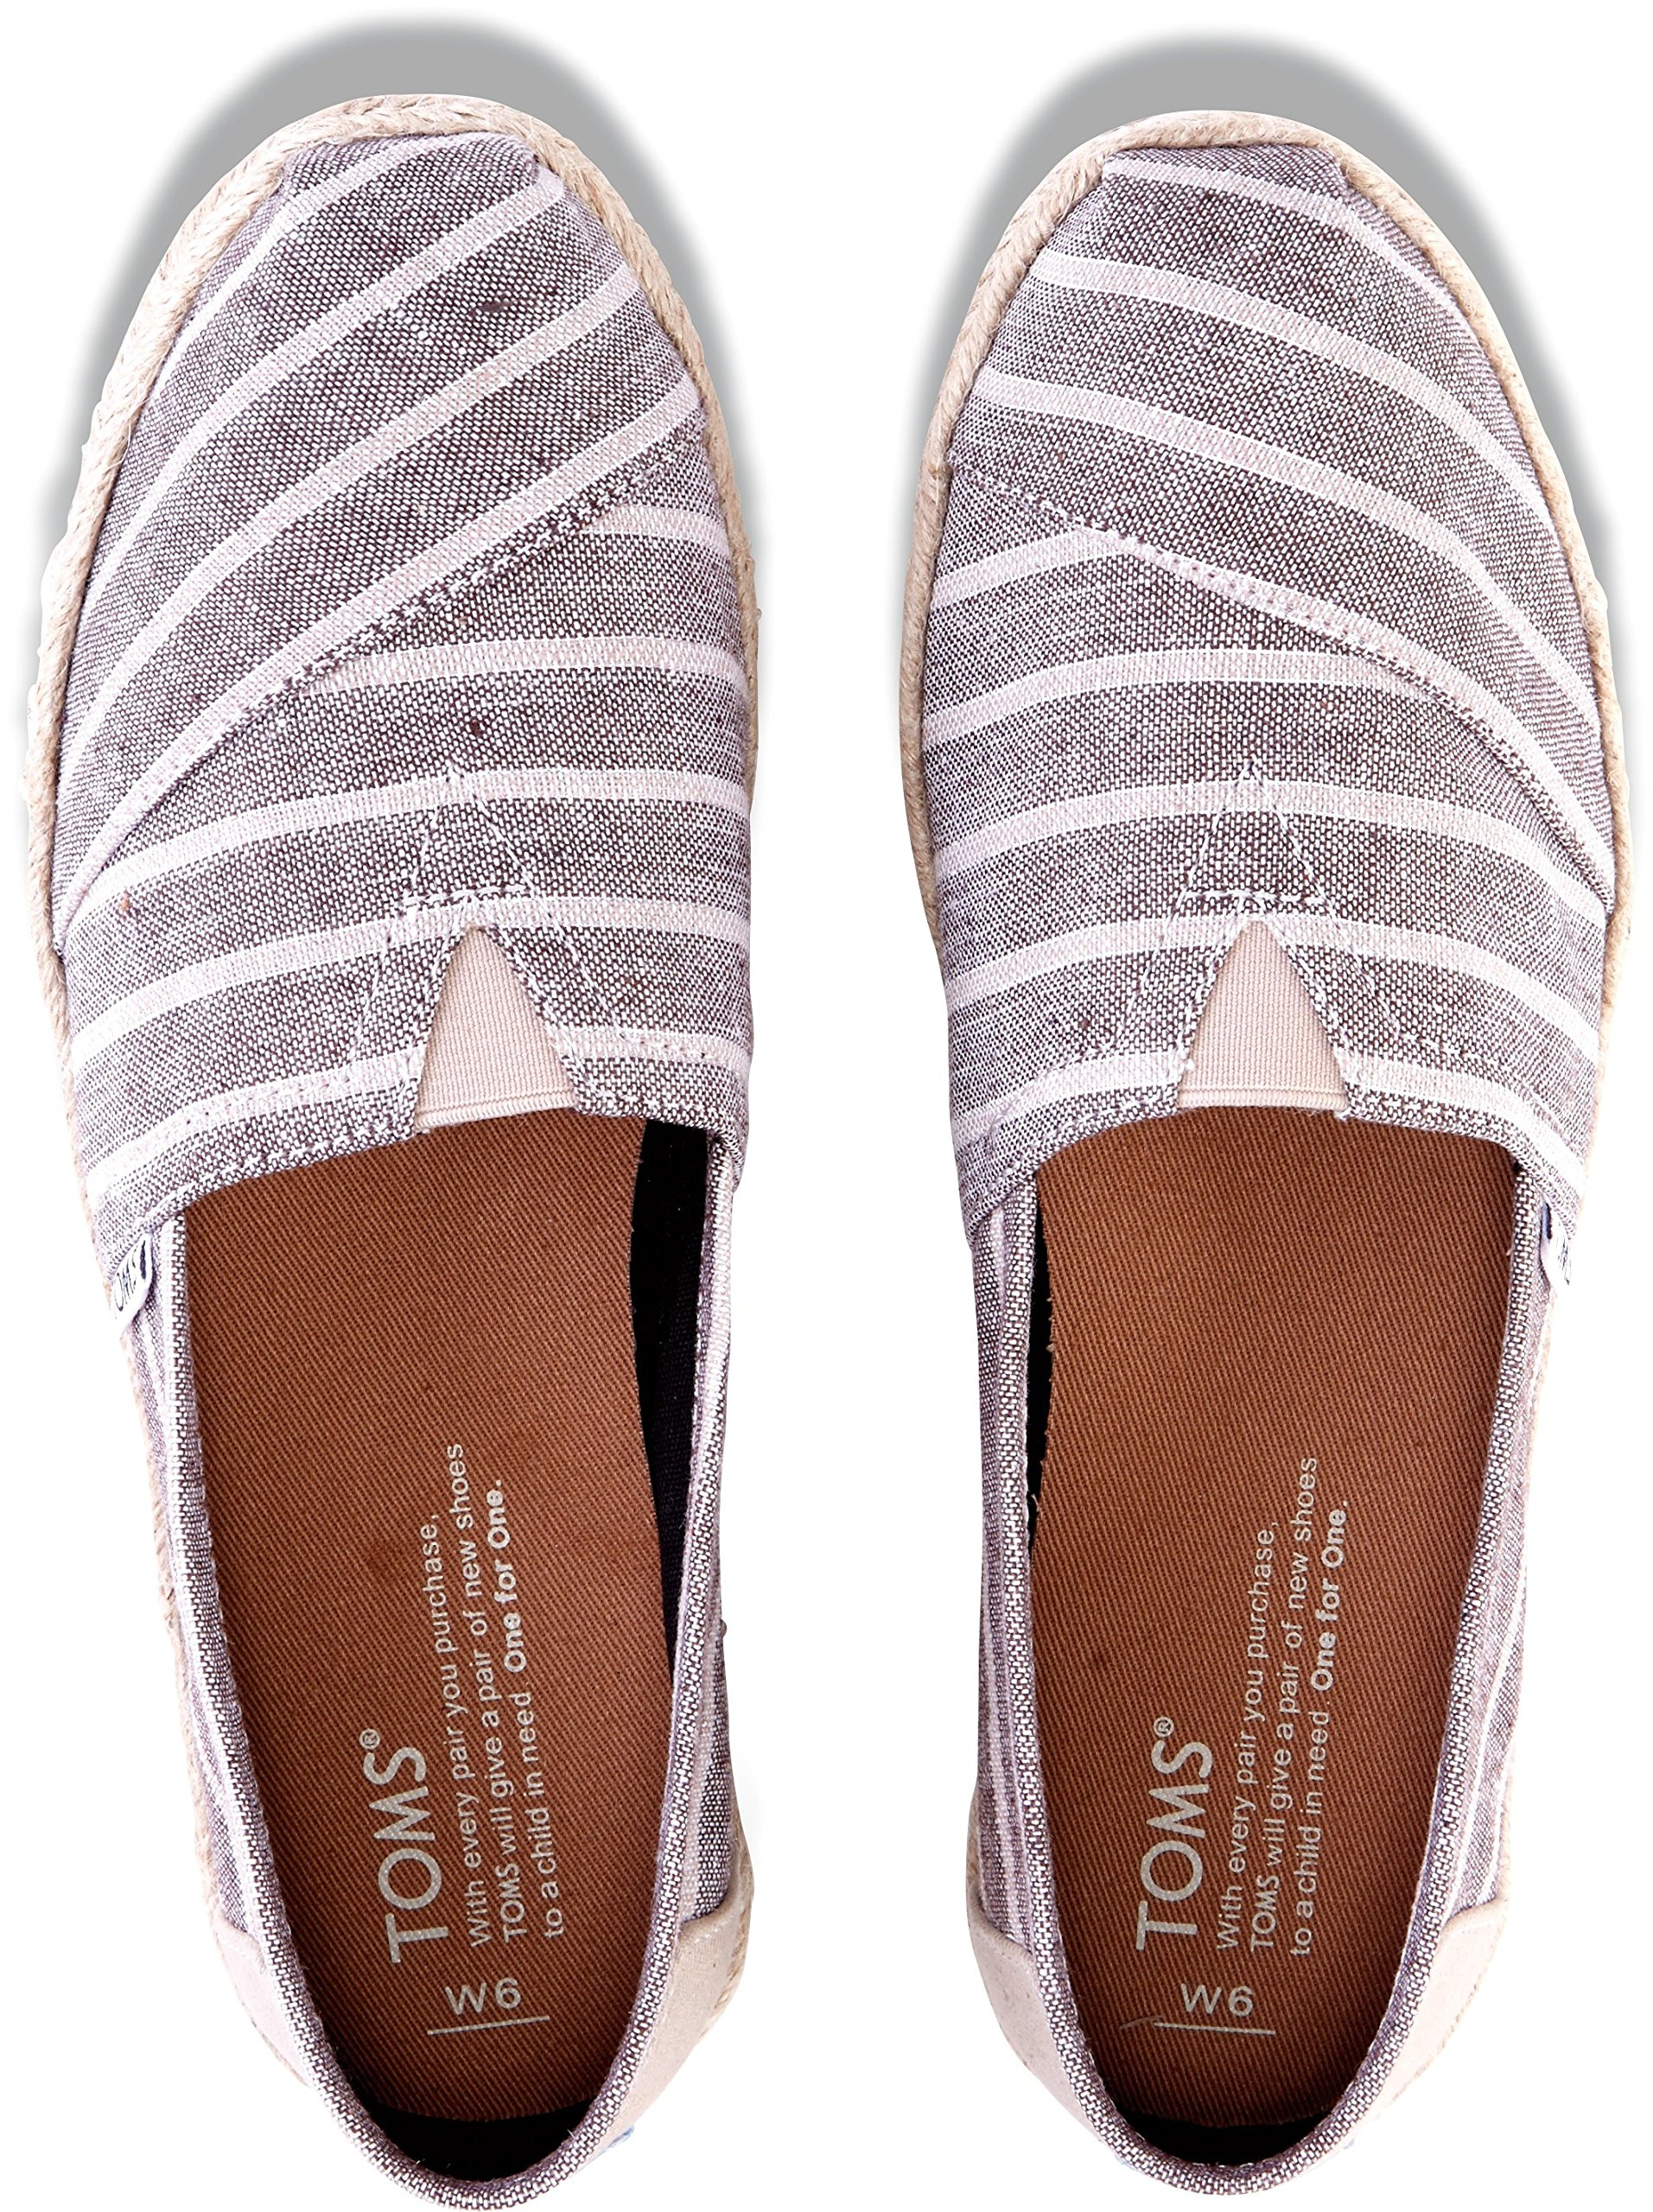 TOMS Womens Classic Slip On Canvas Square Toe, Brown, Size 9.0